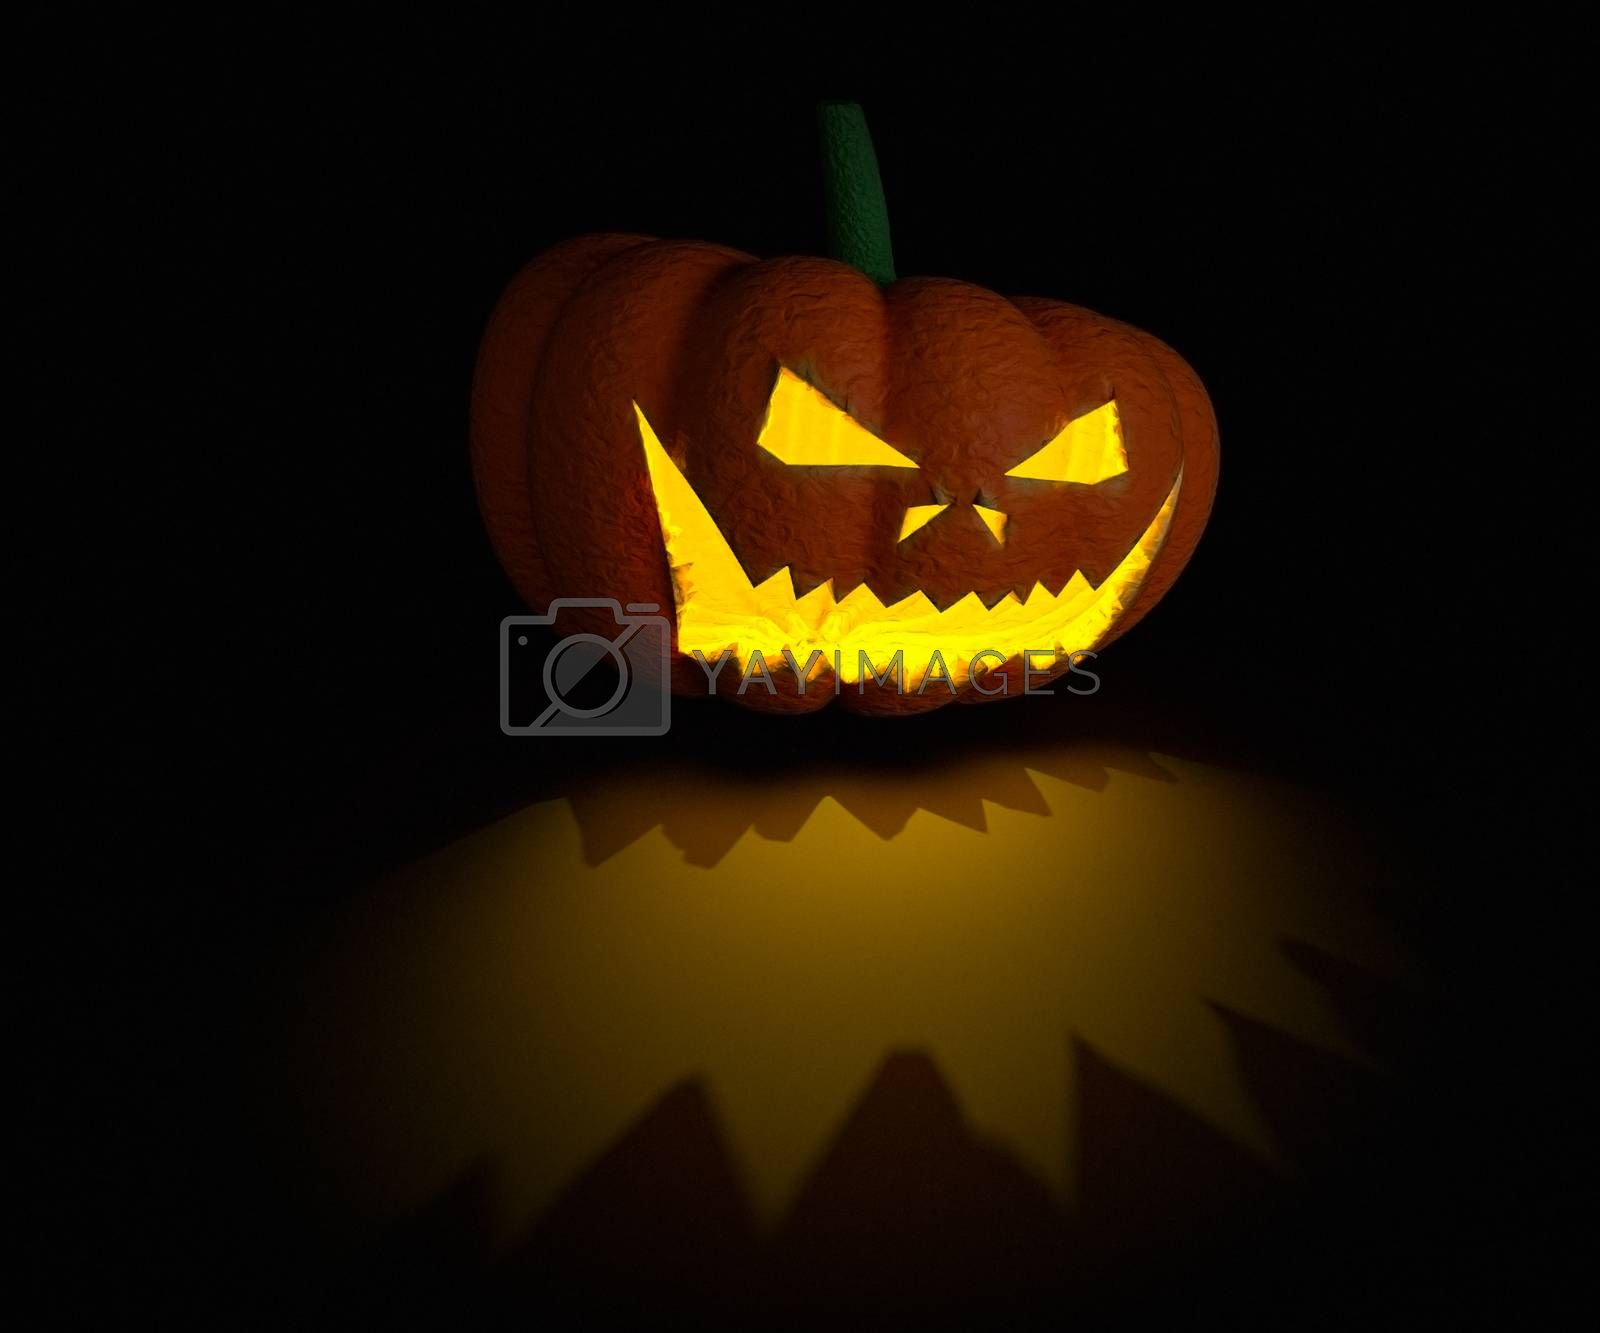 3d render pumpkin lamp on black surface with light and shadow details.